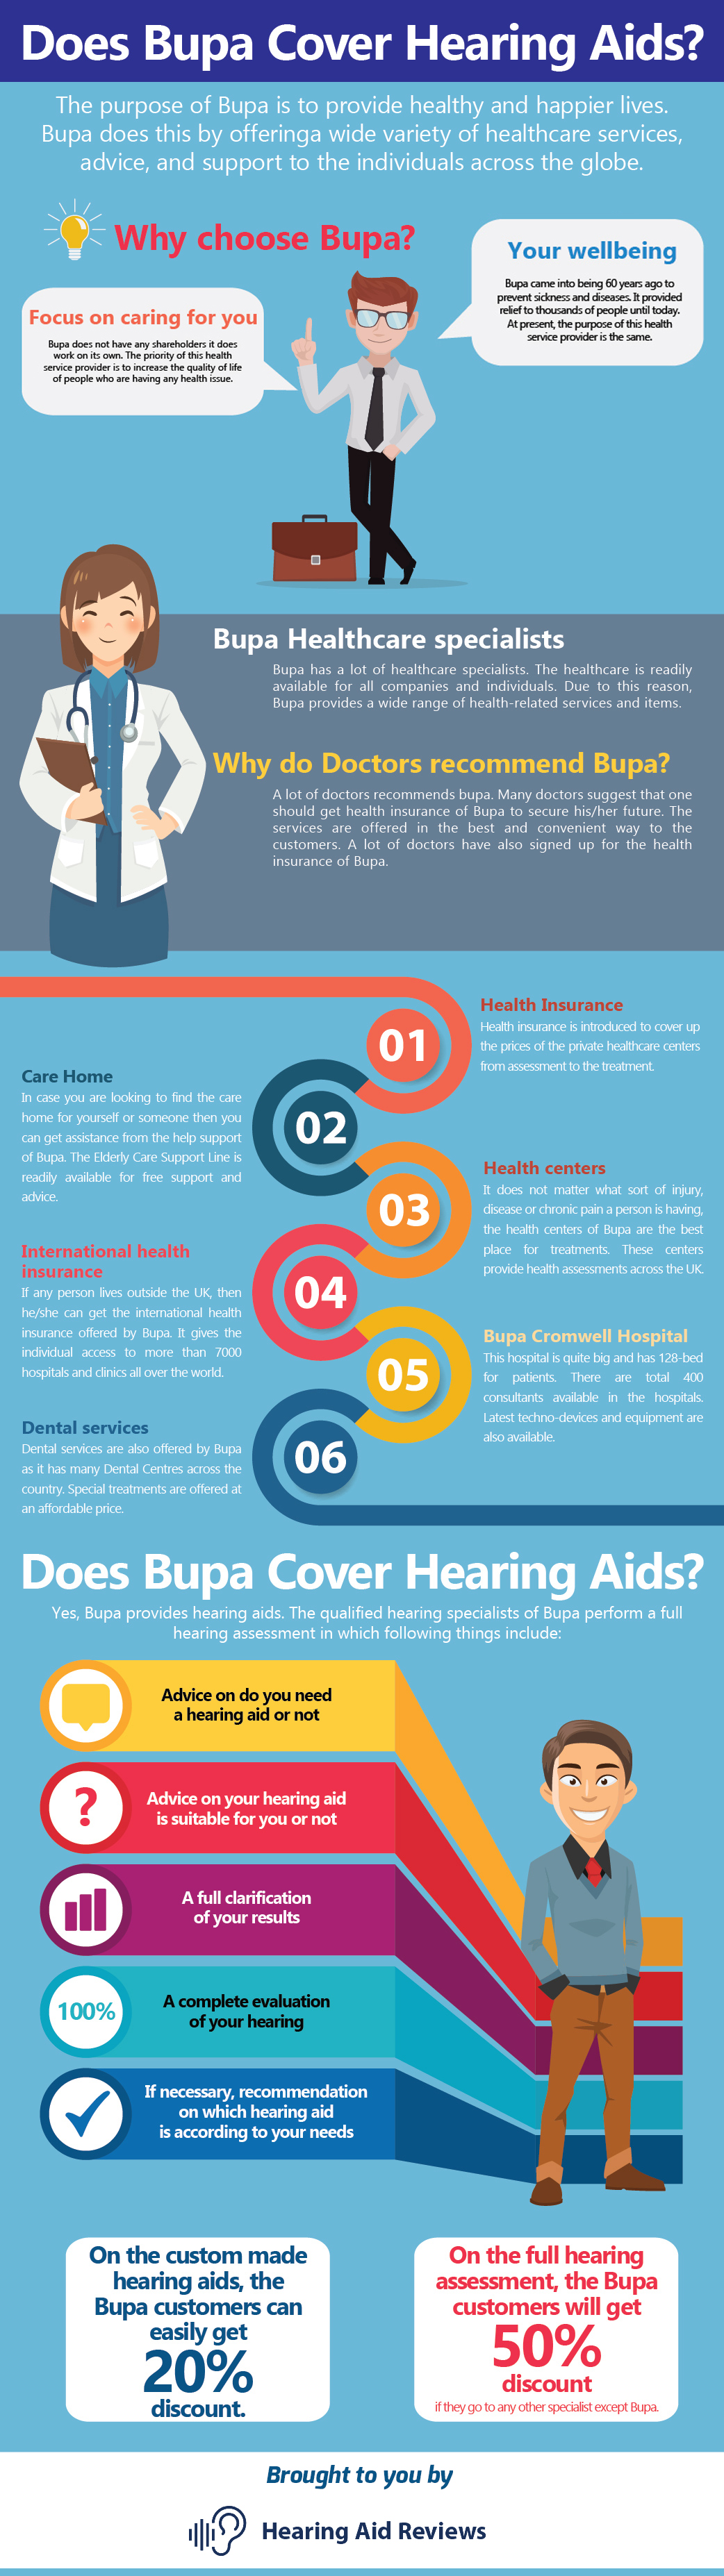 Does Bupa Cover Hearing Aids Best Hearing Aid ReviewsBest Hearing